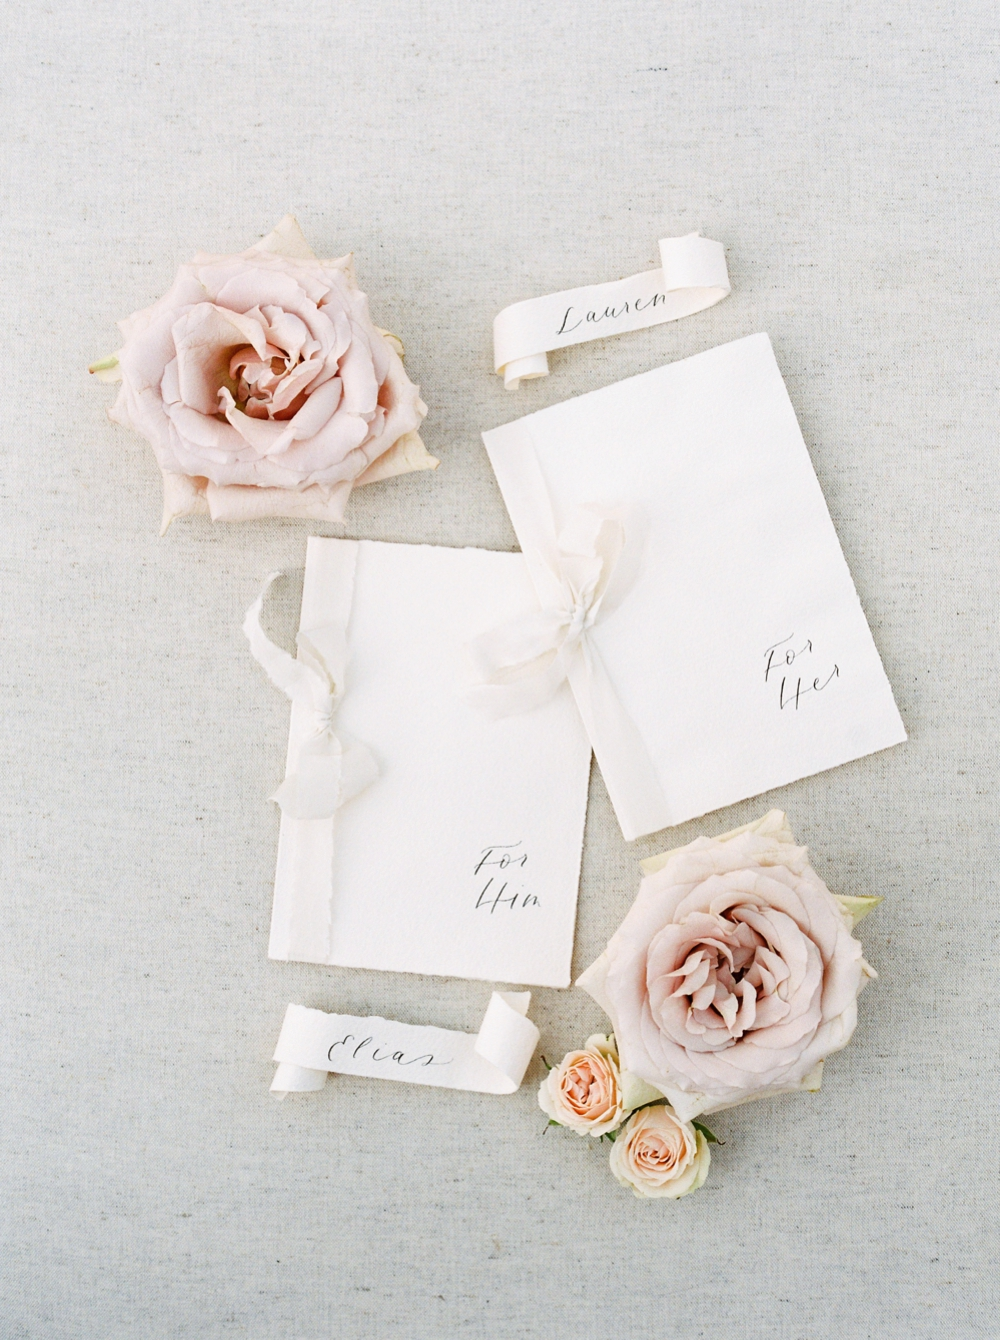 Sanctuary Gardens Kelowna Wedding | Elopement Photography | Calligraphy wedding stationery and vow books | Justine Milton Fine Art Film Wedding Photographers